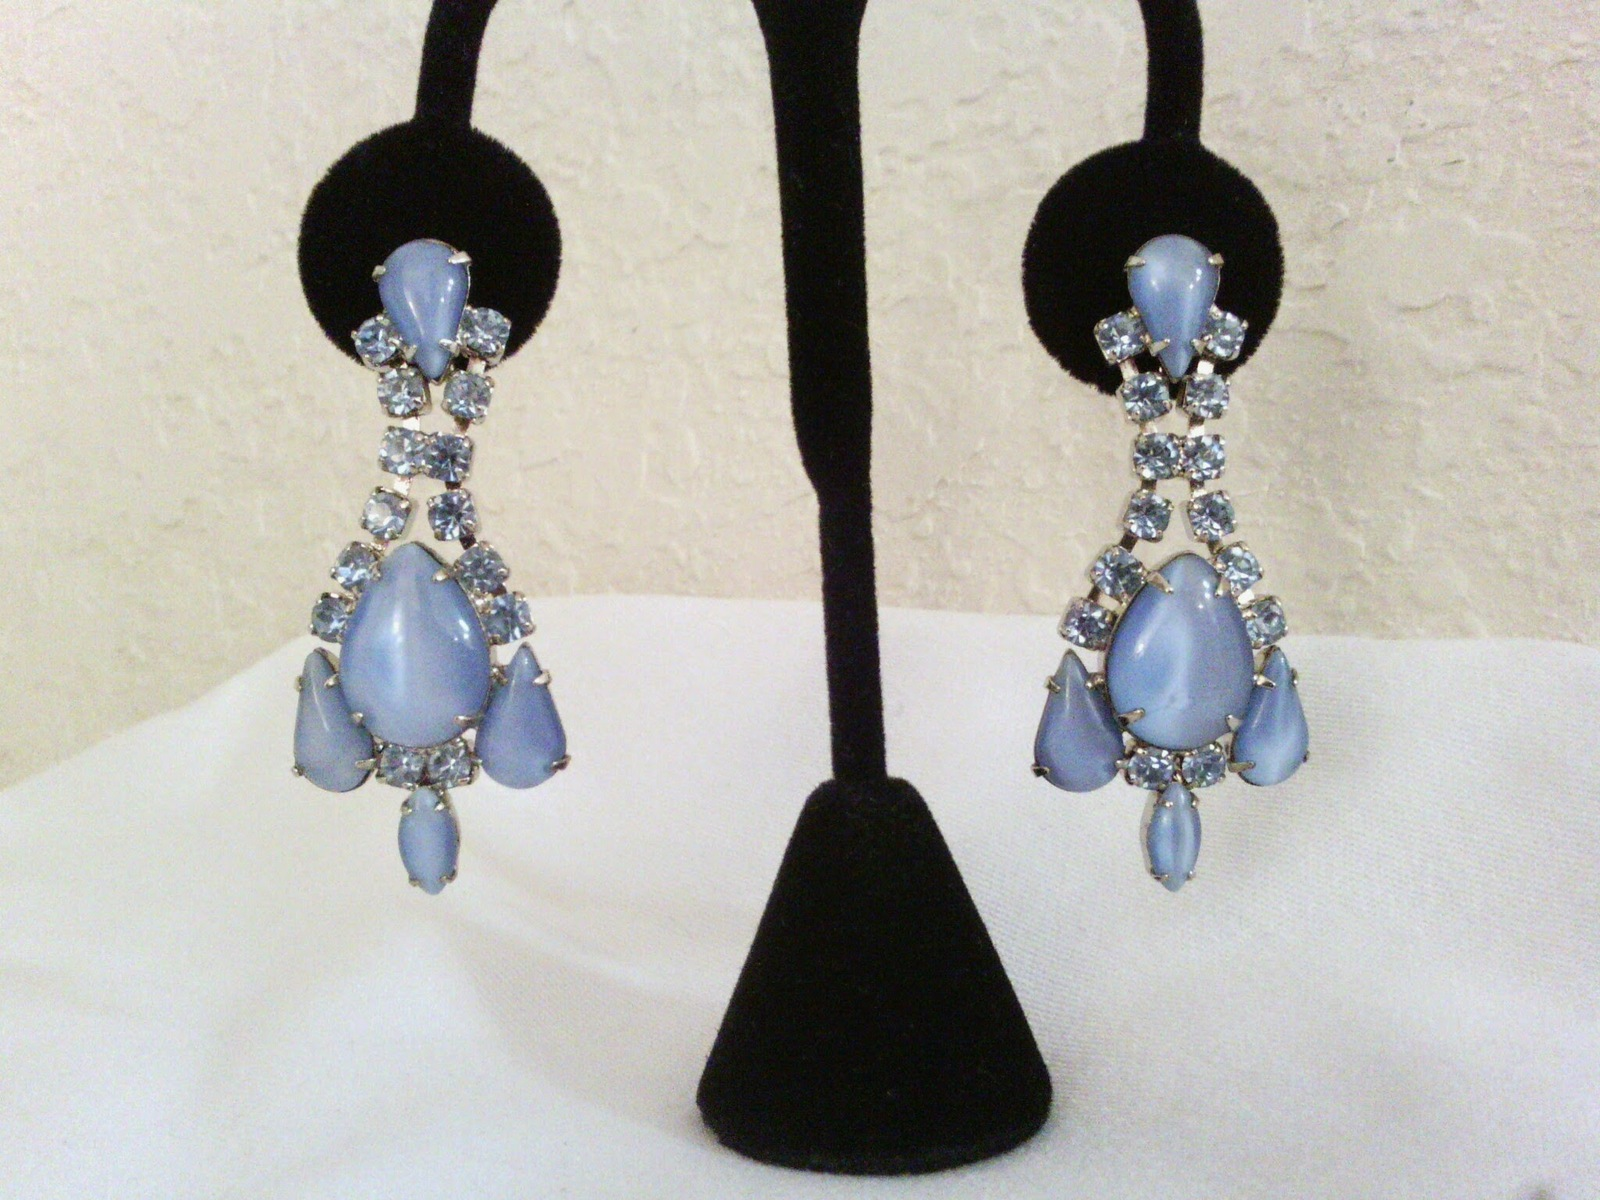 Blue Moonglow and Crystals Vintage Estate Drop Earrings